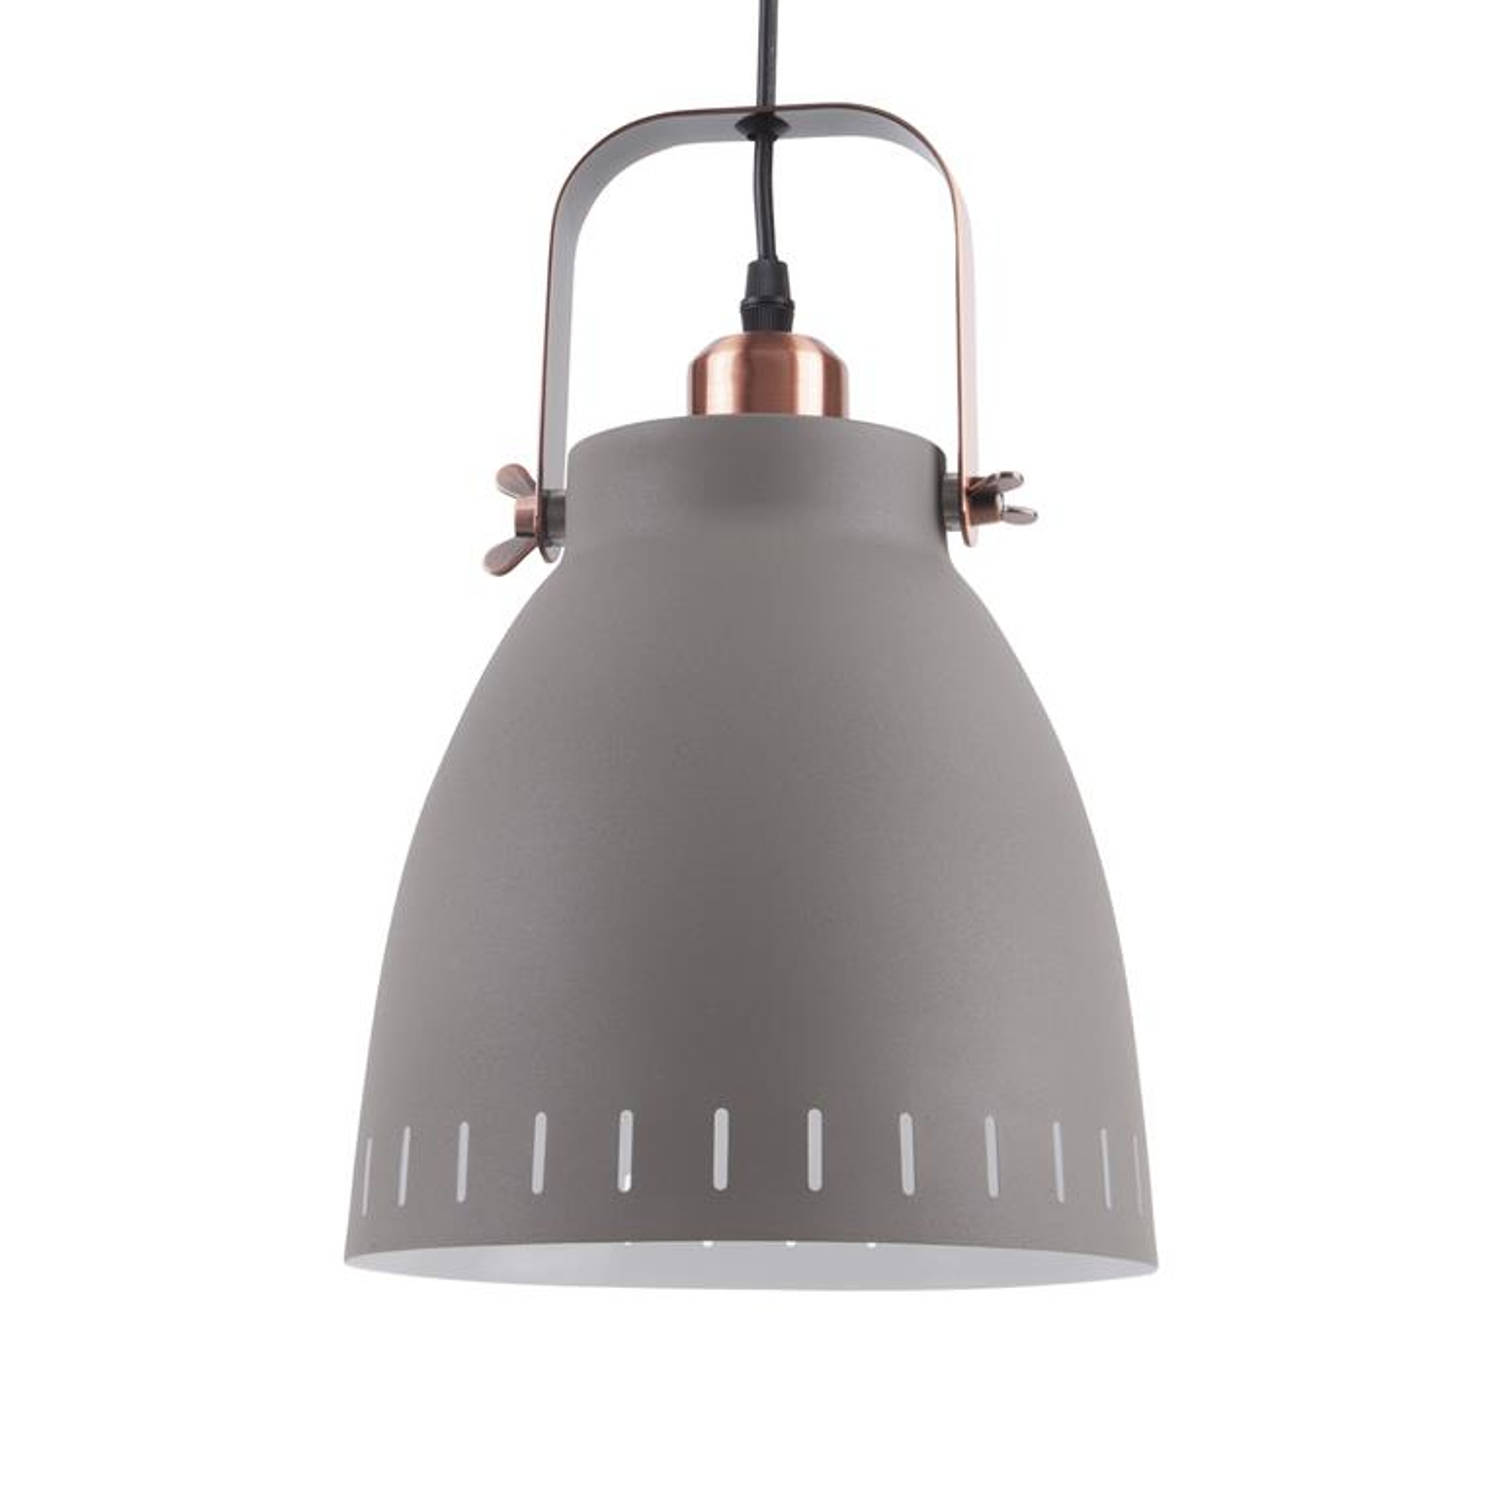 Hanglamp Mingle Grijs Small E27 Leitmotiv